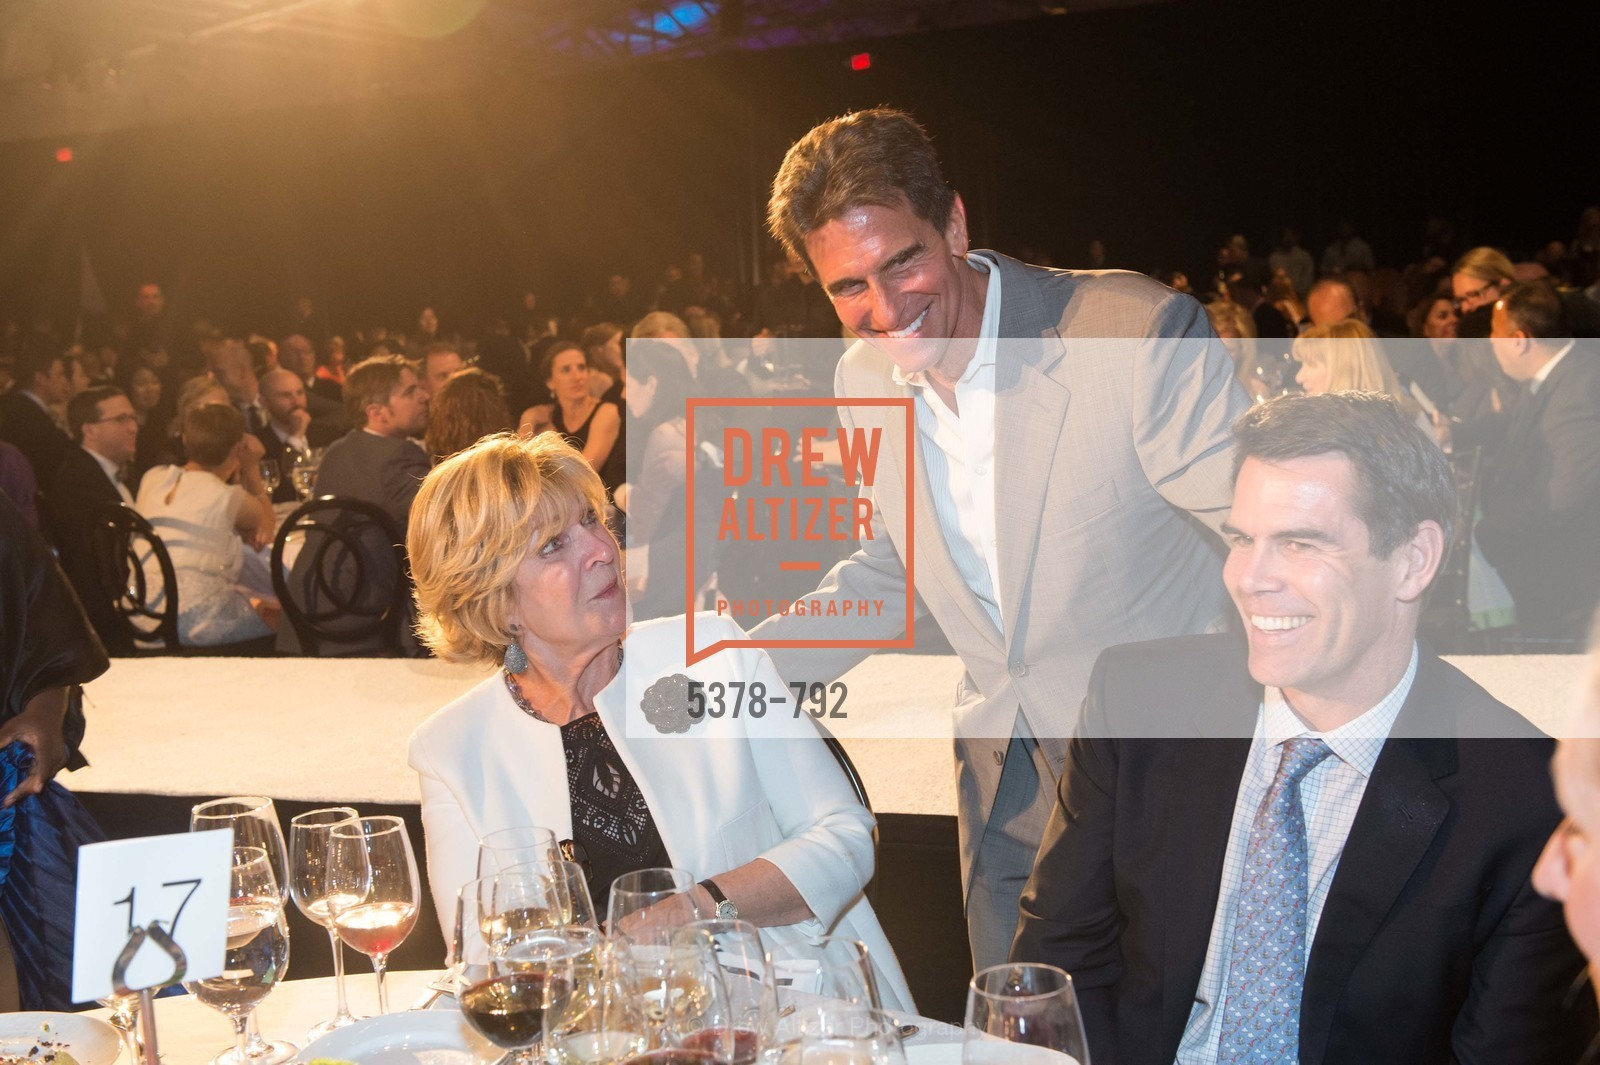 Mark Leno, MEALS ON WHEELS OF SAN FRANCISCO'S 28th Annual Star Chefs and Vintners Gala, US, April 20th, 2015,Drew Altizer, Drew Altizer Photography, full-service agency, private events, San Francisco photographer, photographer california